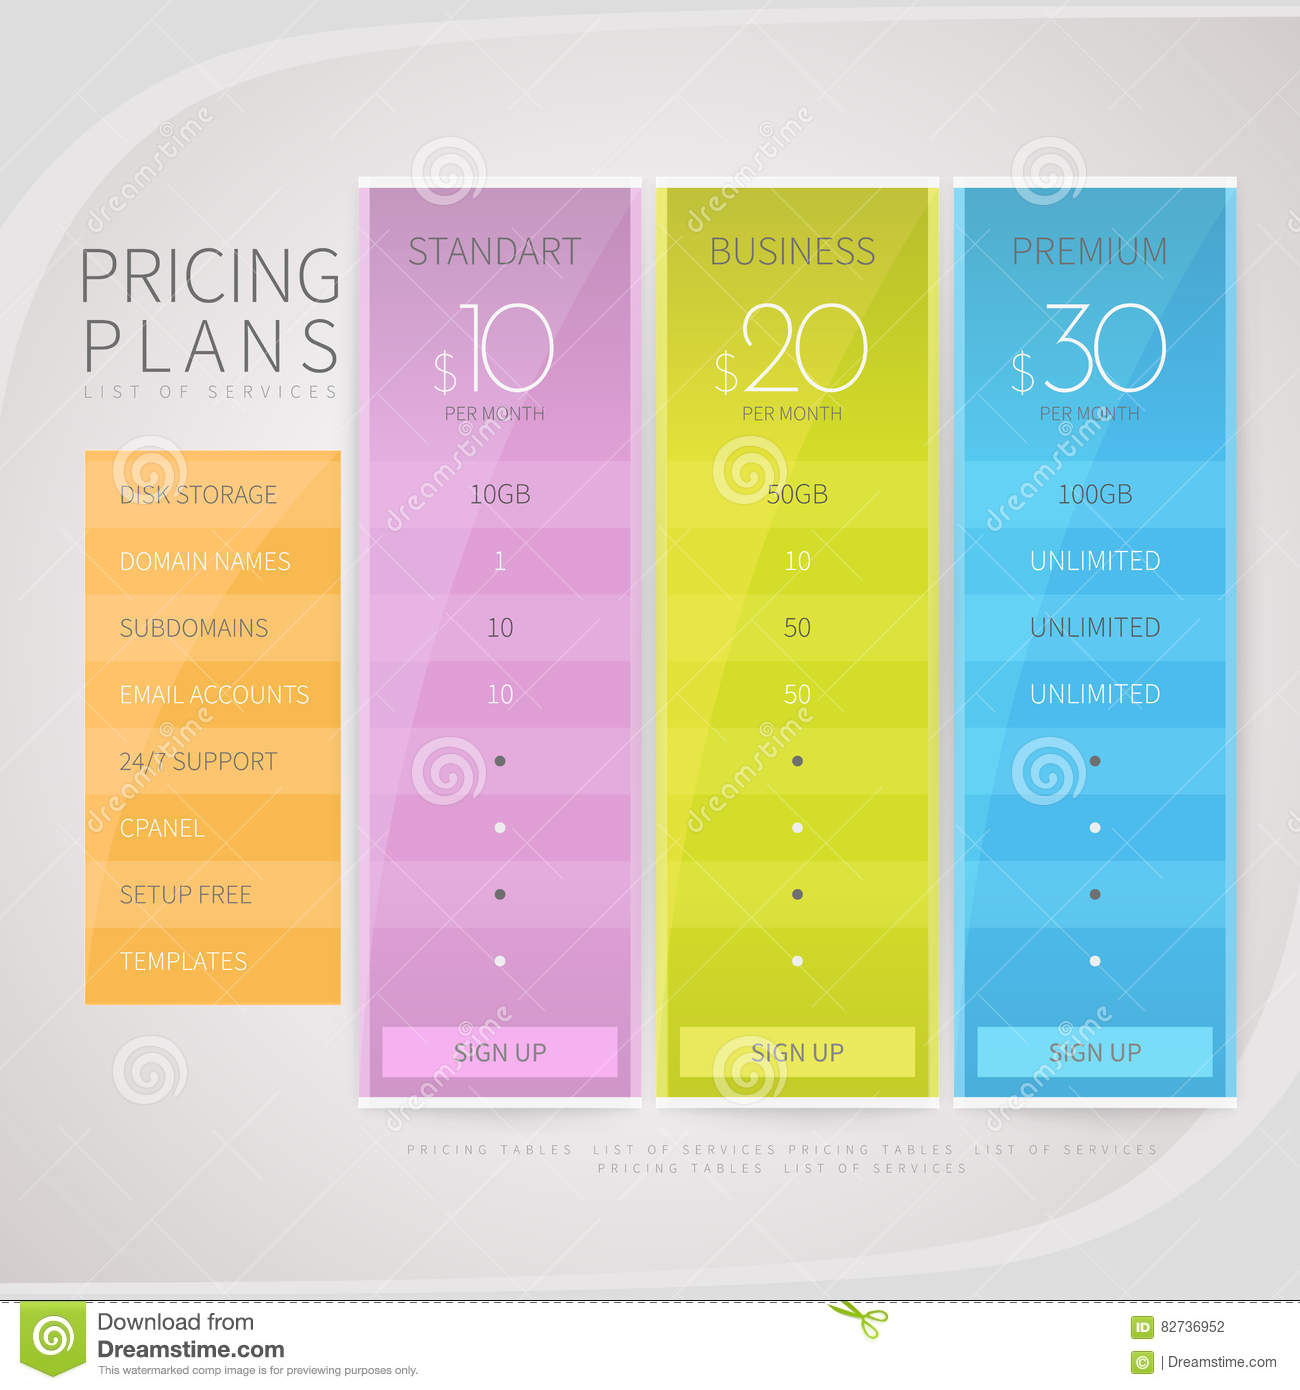 Business Pricing: Pricing Comparison Table Set For Commercial Business Web